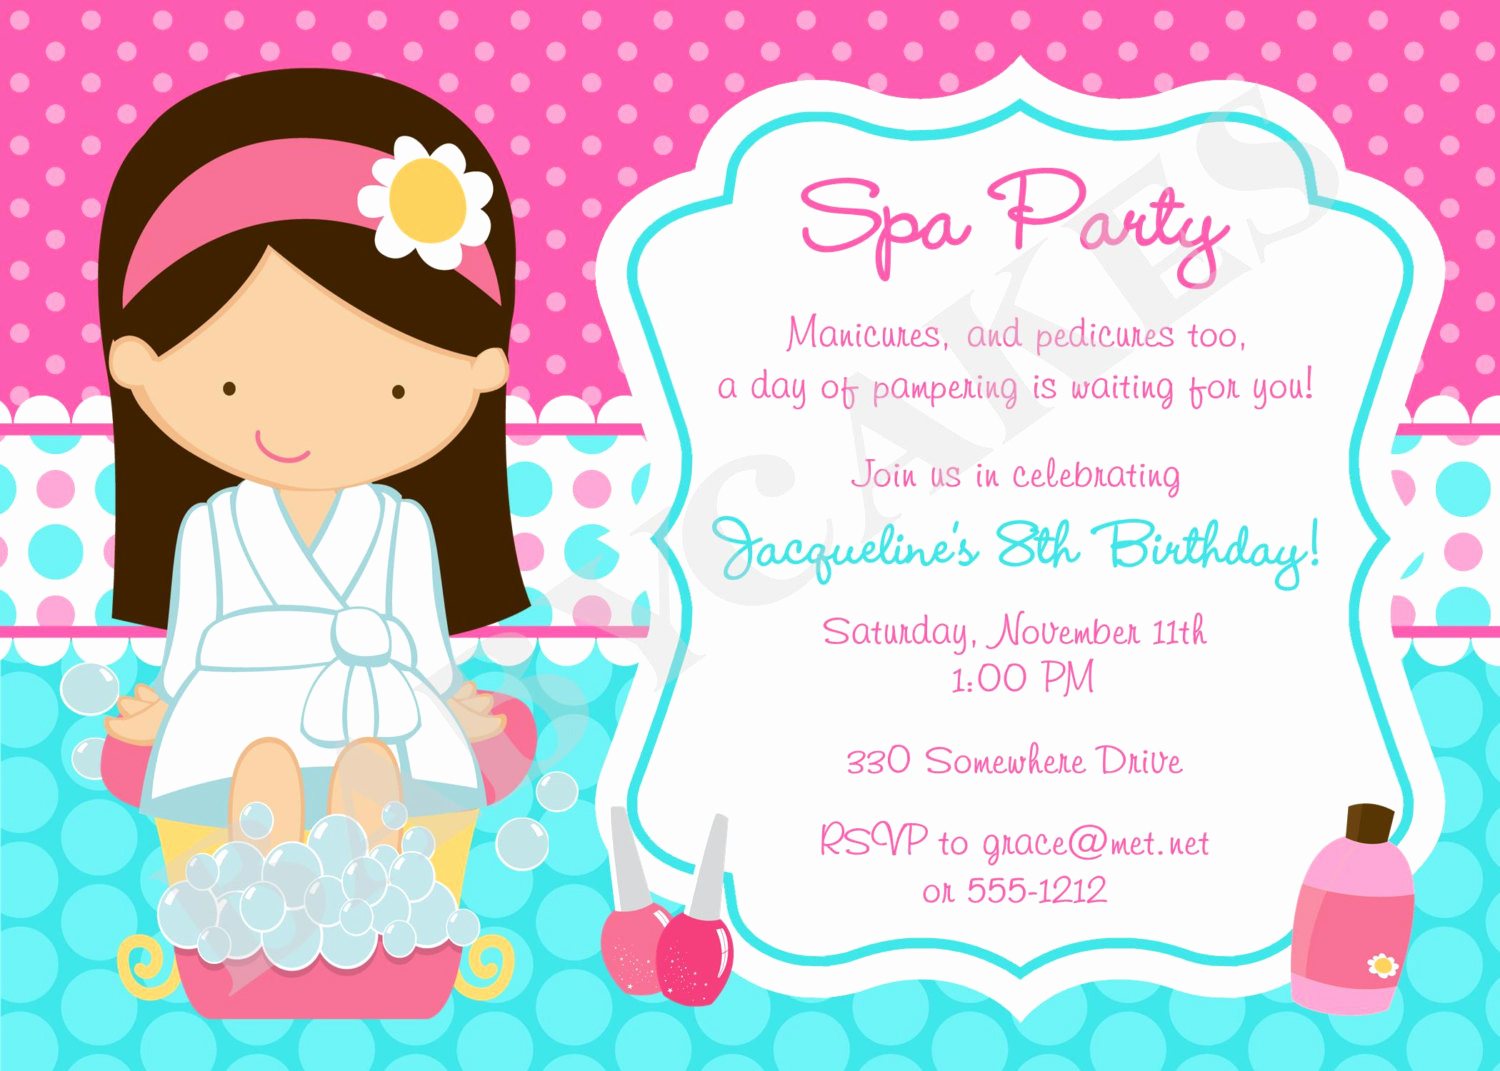 Spa Party Invitation Wording Best Of Spa Party Invitation Spa Birthday Party Spa Invitation